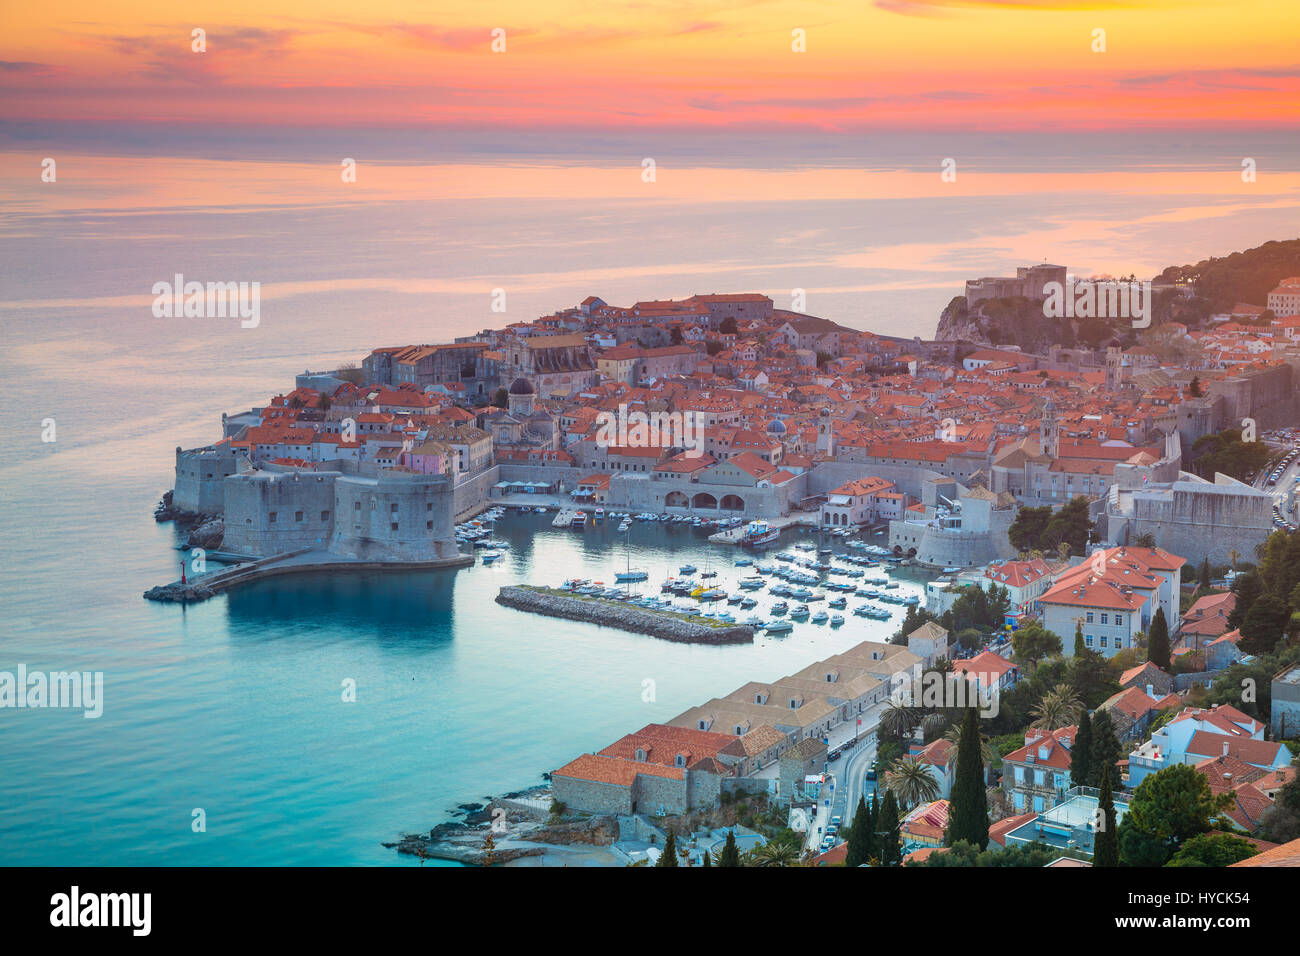 Dubrovnik, Croatia. Beautiful romantic old town of Dubrovnik during sunset. Stock Photo